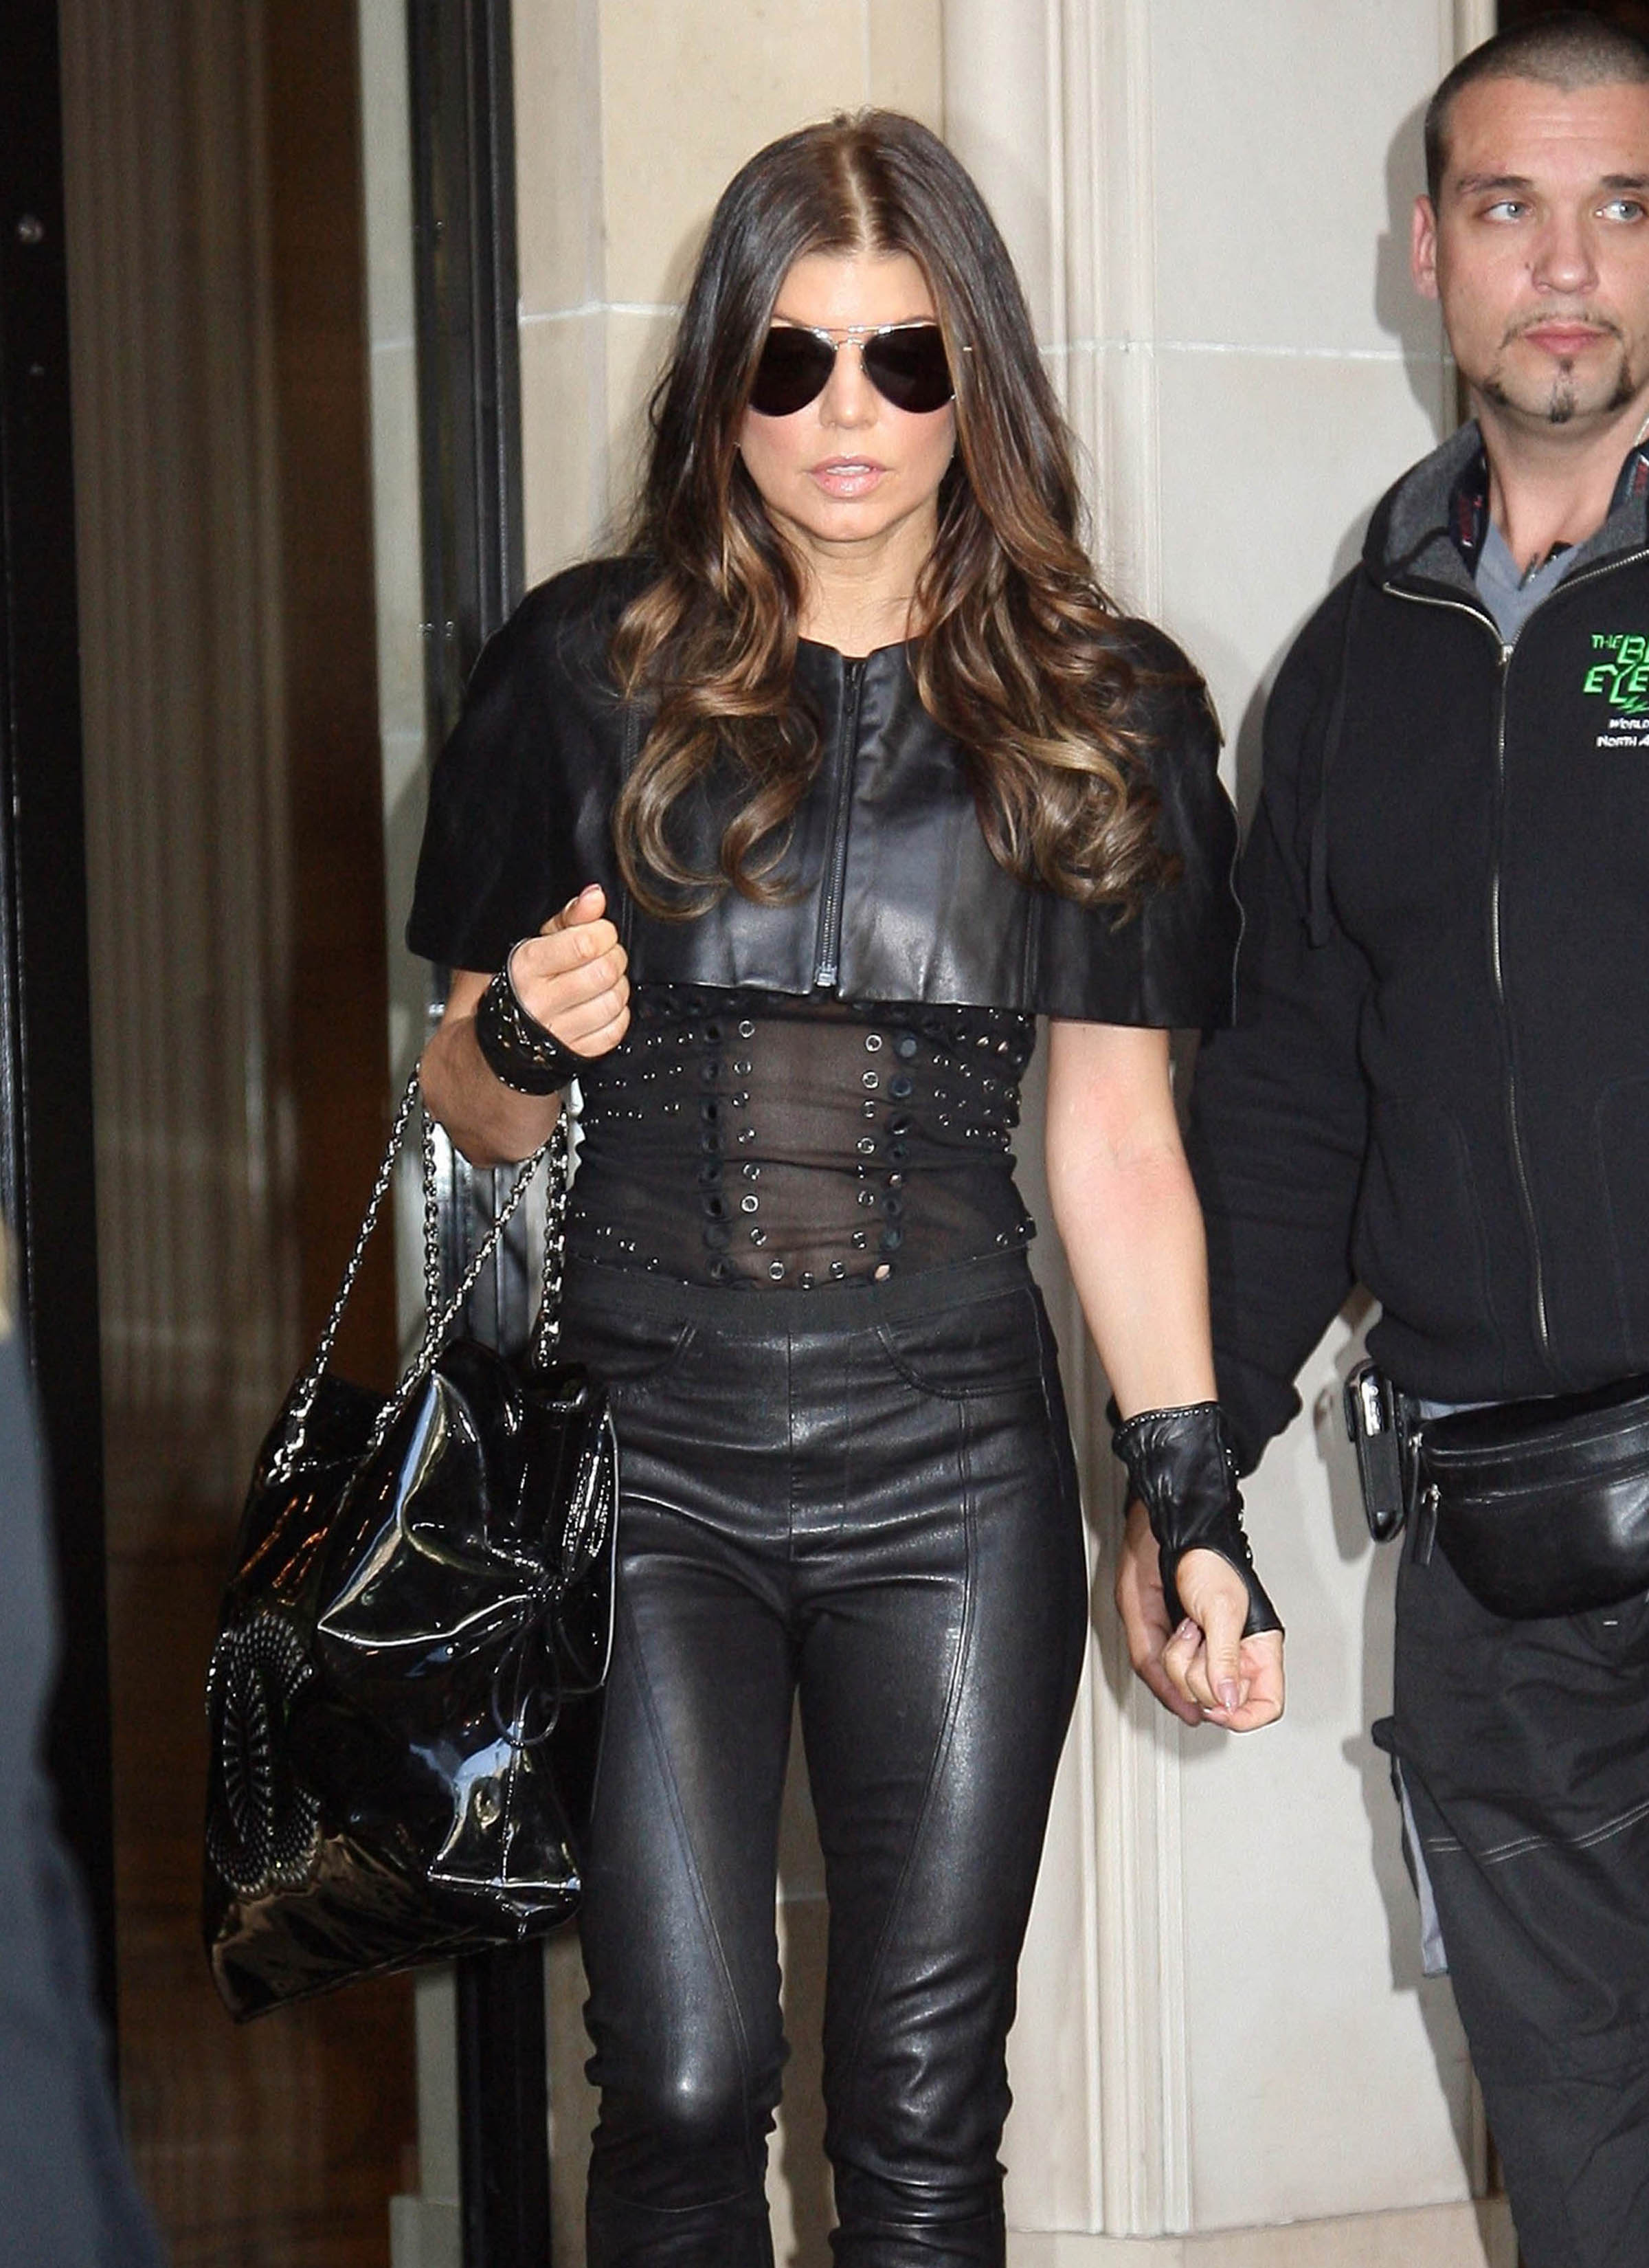 Fashion FTW: Fergie Is Looking Rather Leathery (PHOTOS)